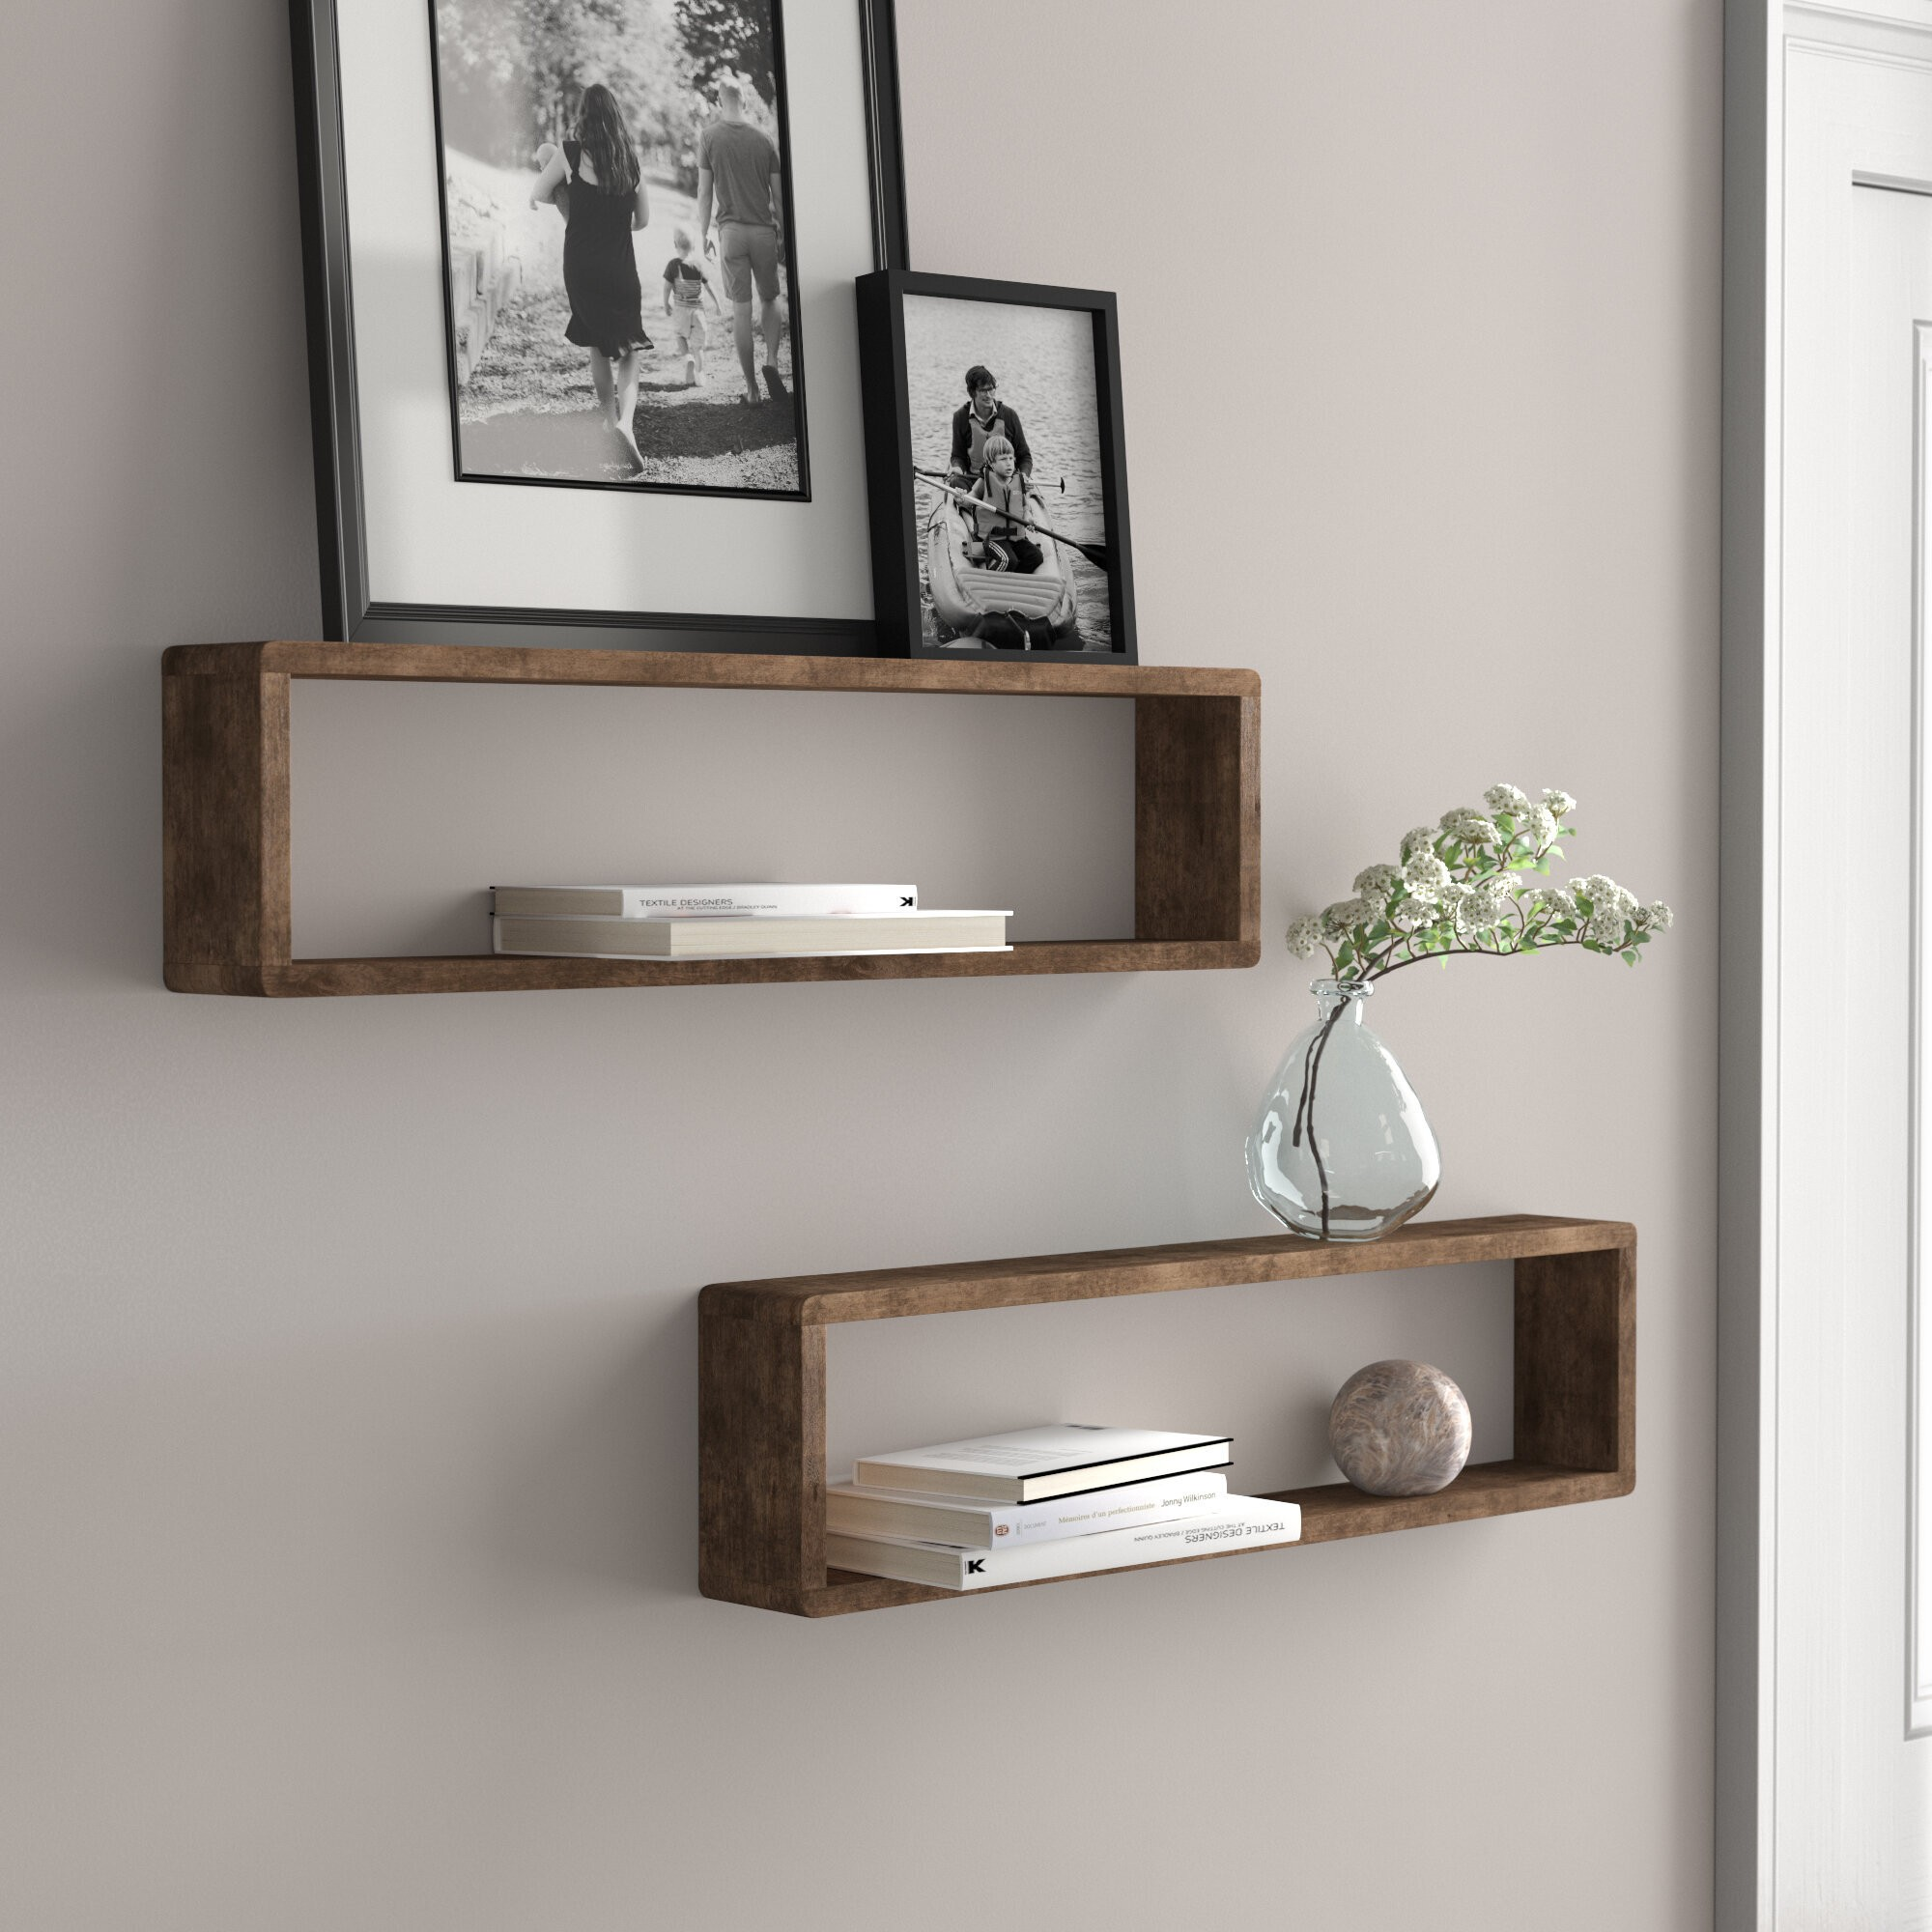 How To Choose Wall-Mounted Storage